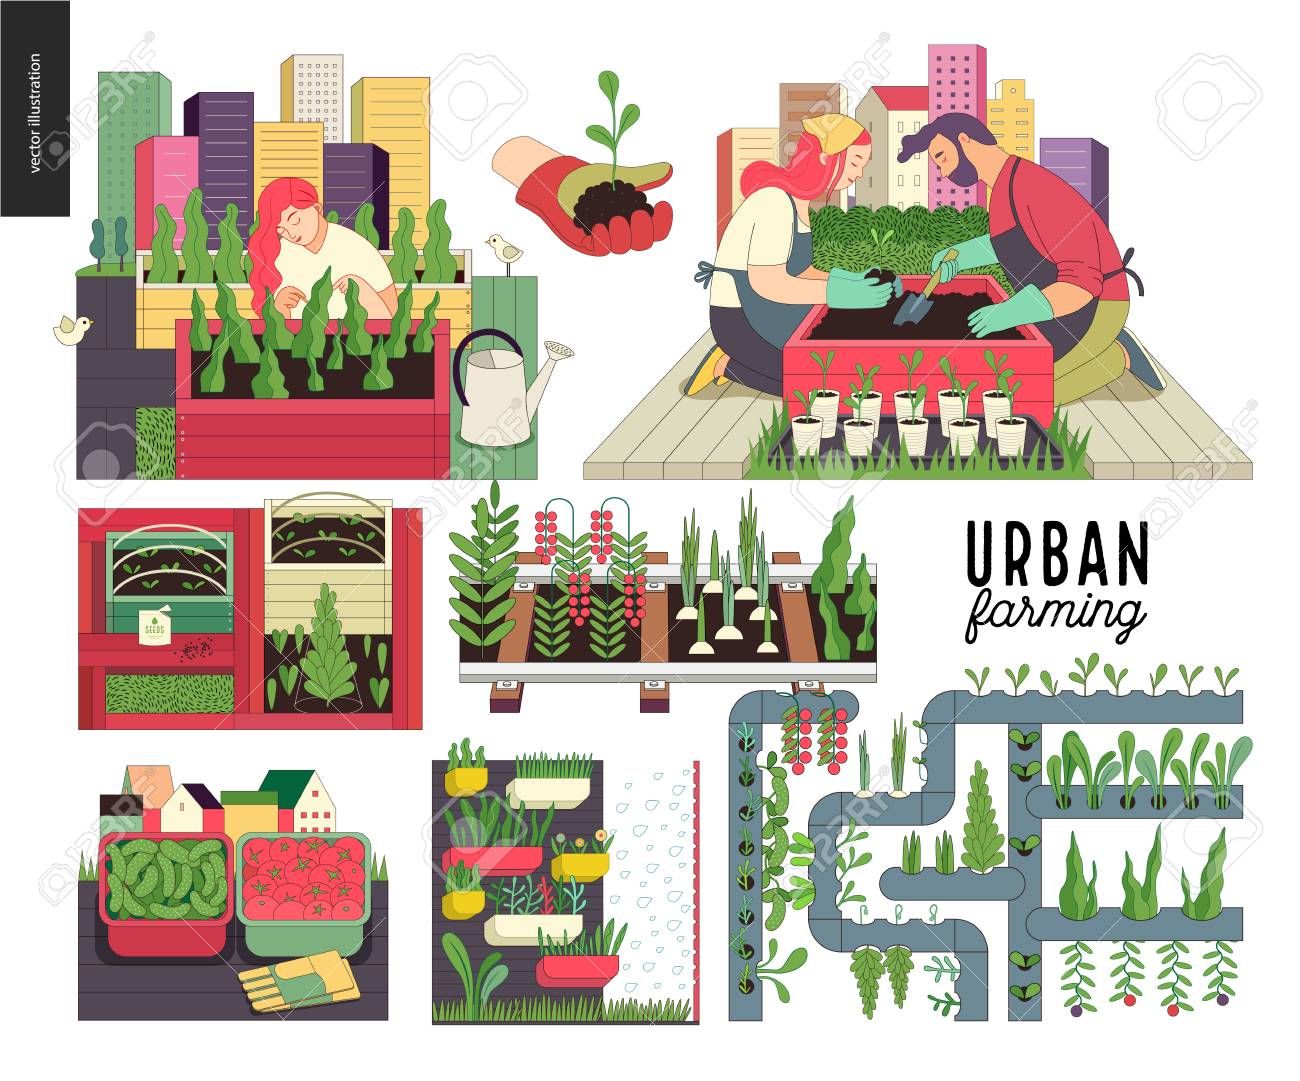 Urban farming, gardening or agriculture set. Planting, harvest, wooden seedbeds, planting on rails, vertical farming and hydroponics. - 94100243